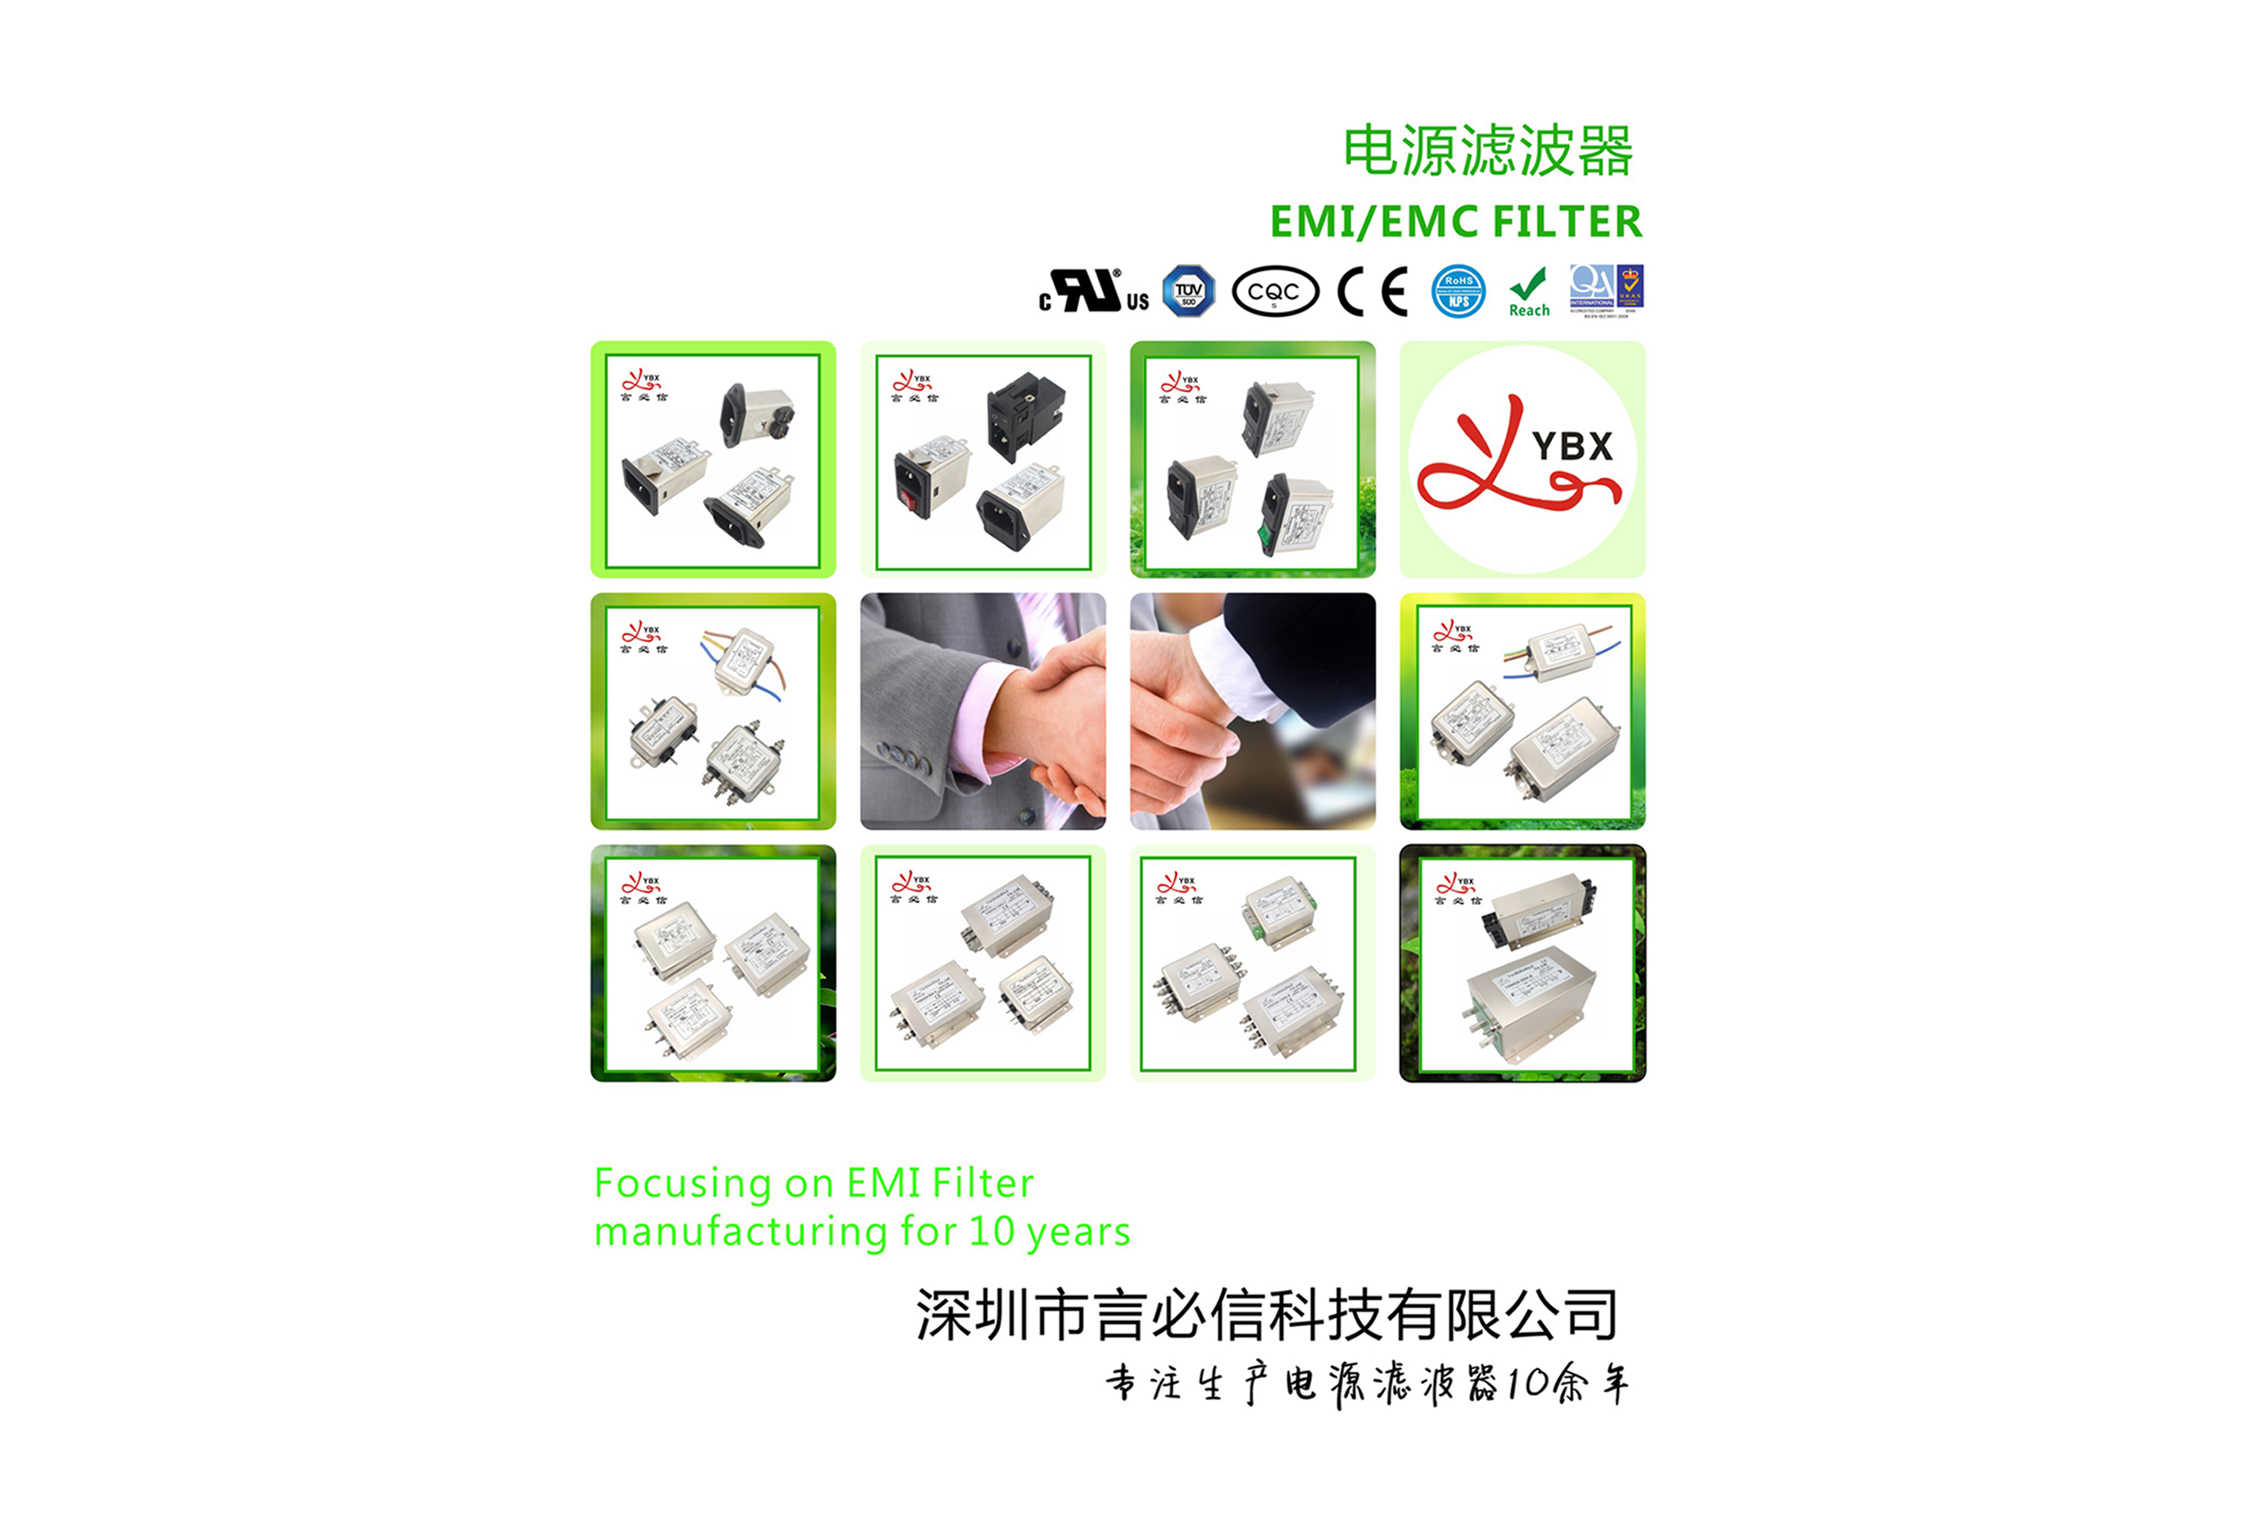 Teach you how to quickly understand Yanbixin power filter